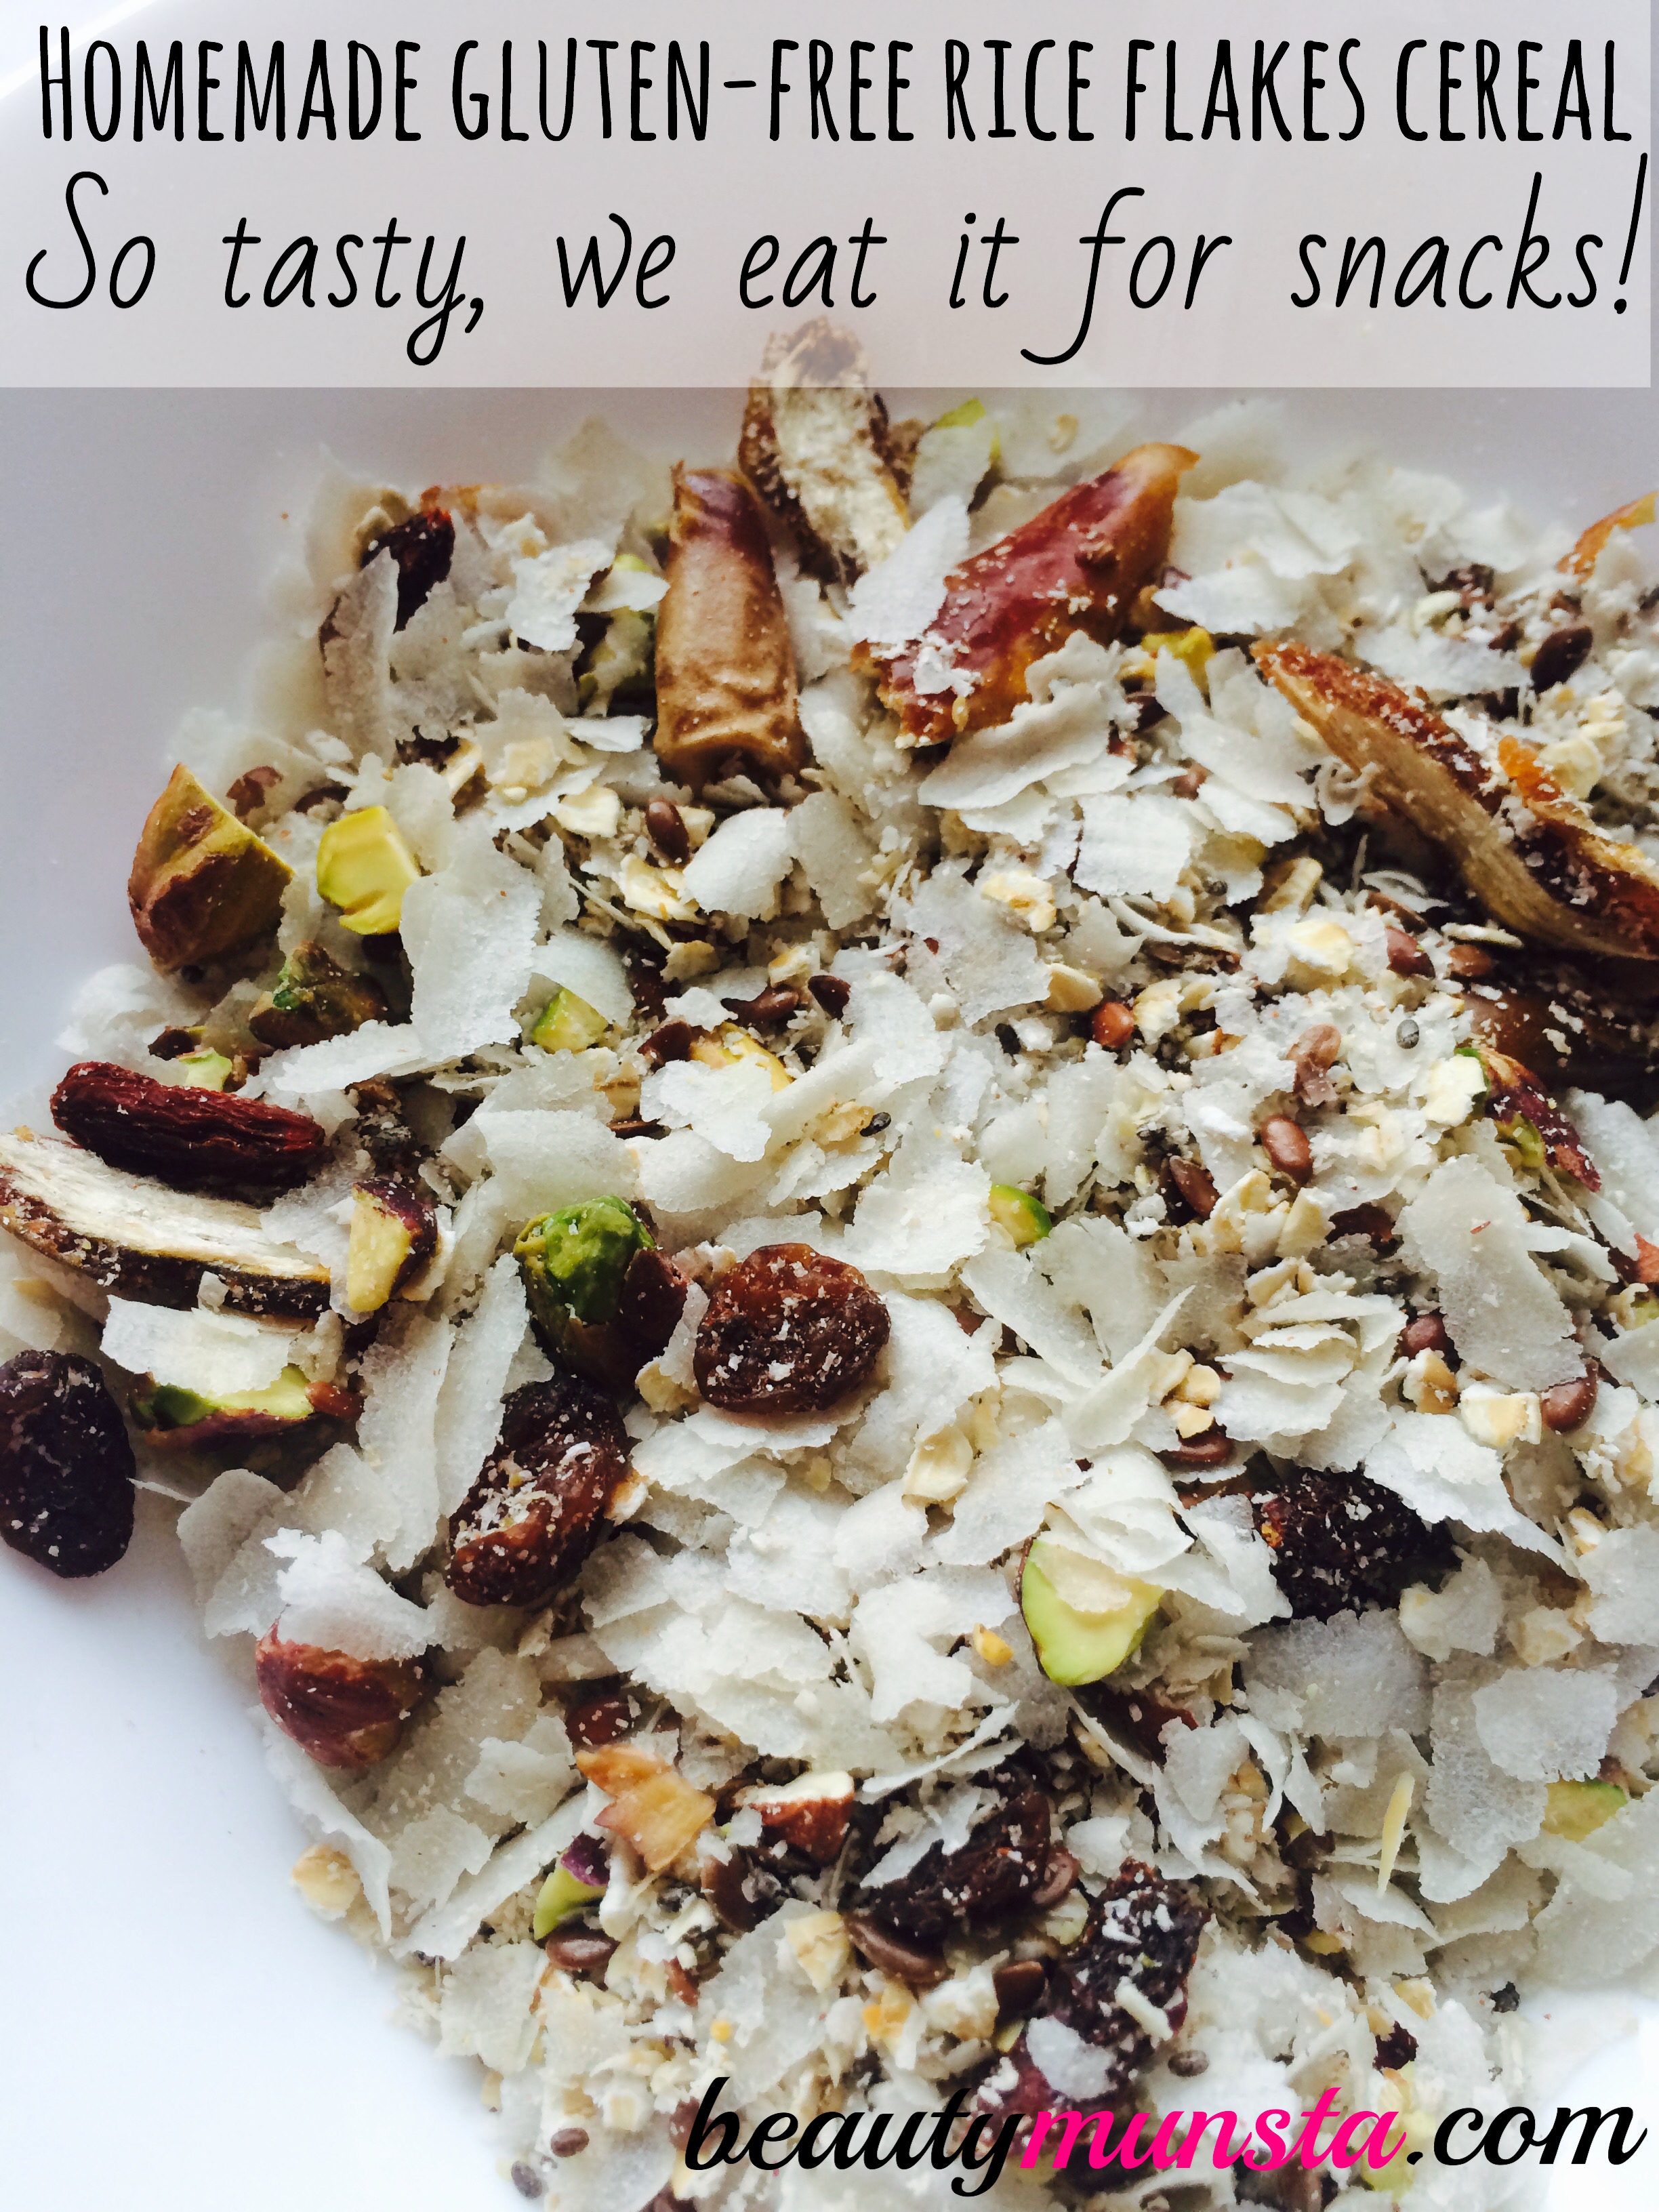 Make your own healthy, crunchy an delicious homemade gluten-free cereal flakes!